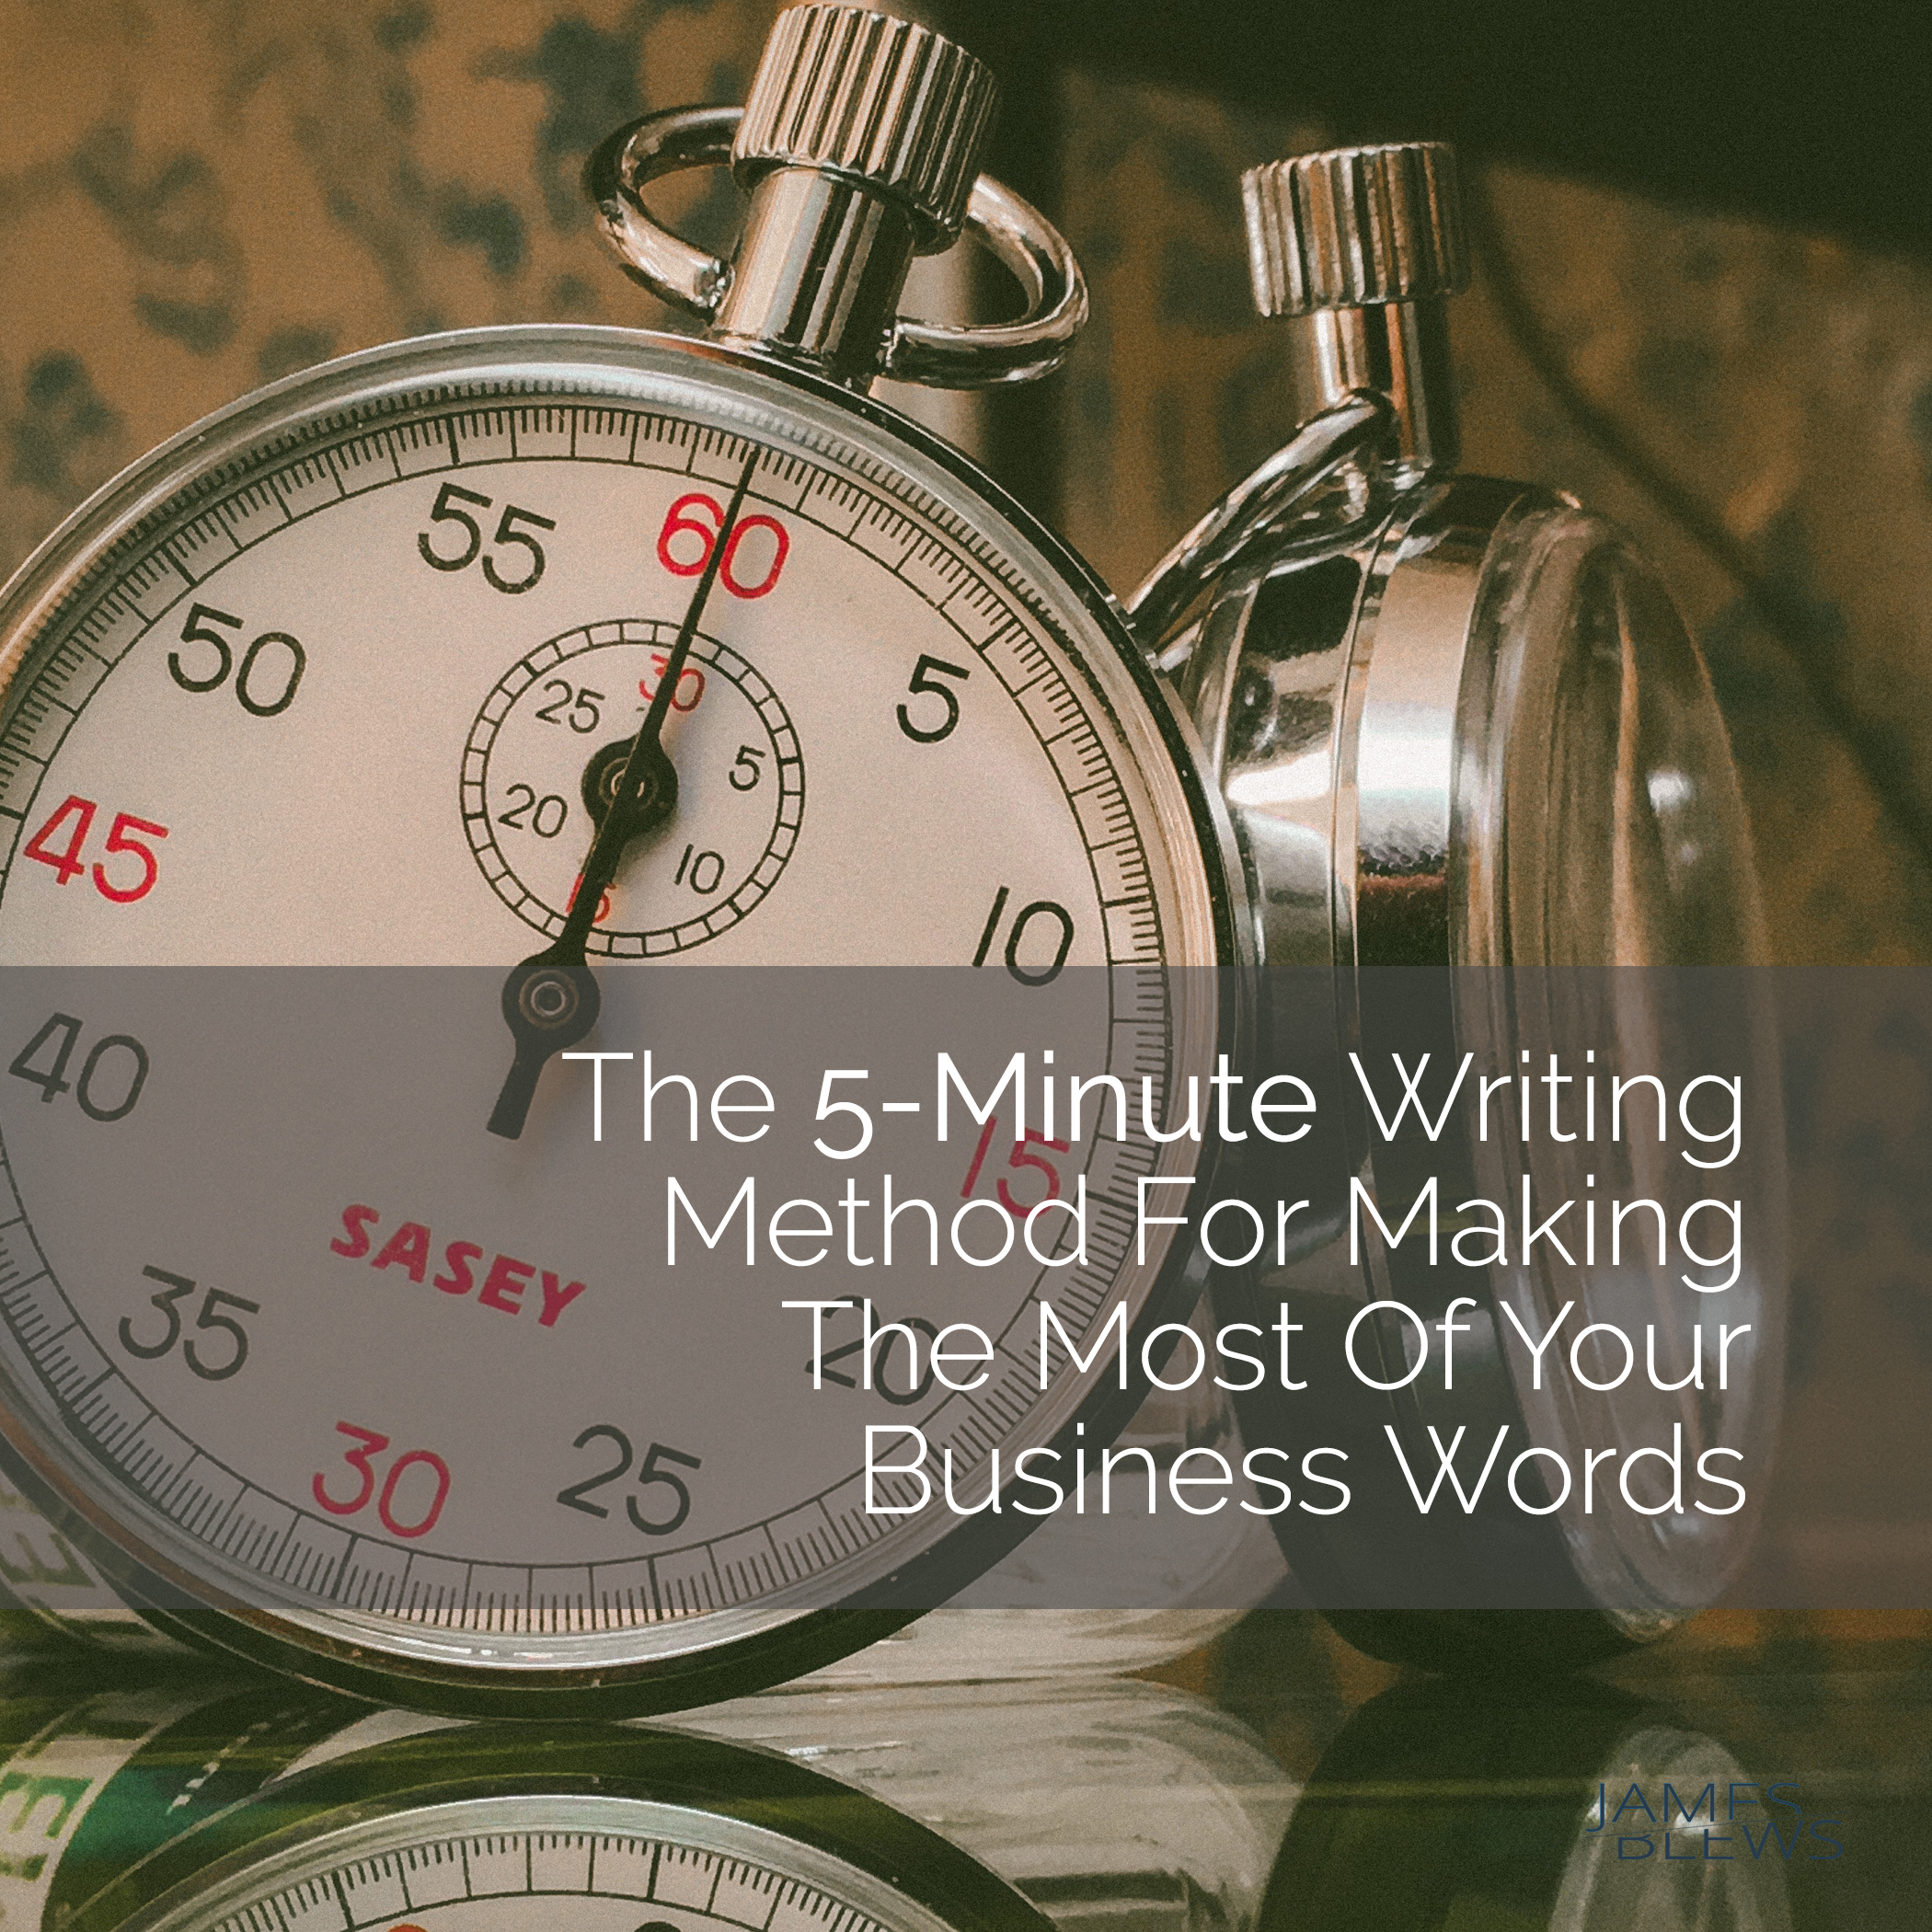 The 5-minute Writing Method For Making The Most Of Your Business Words